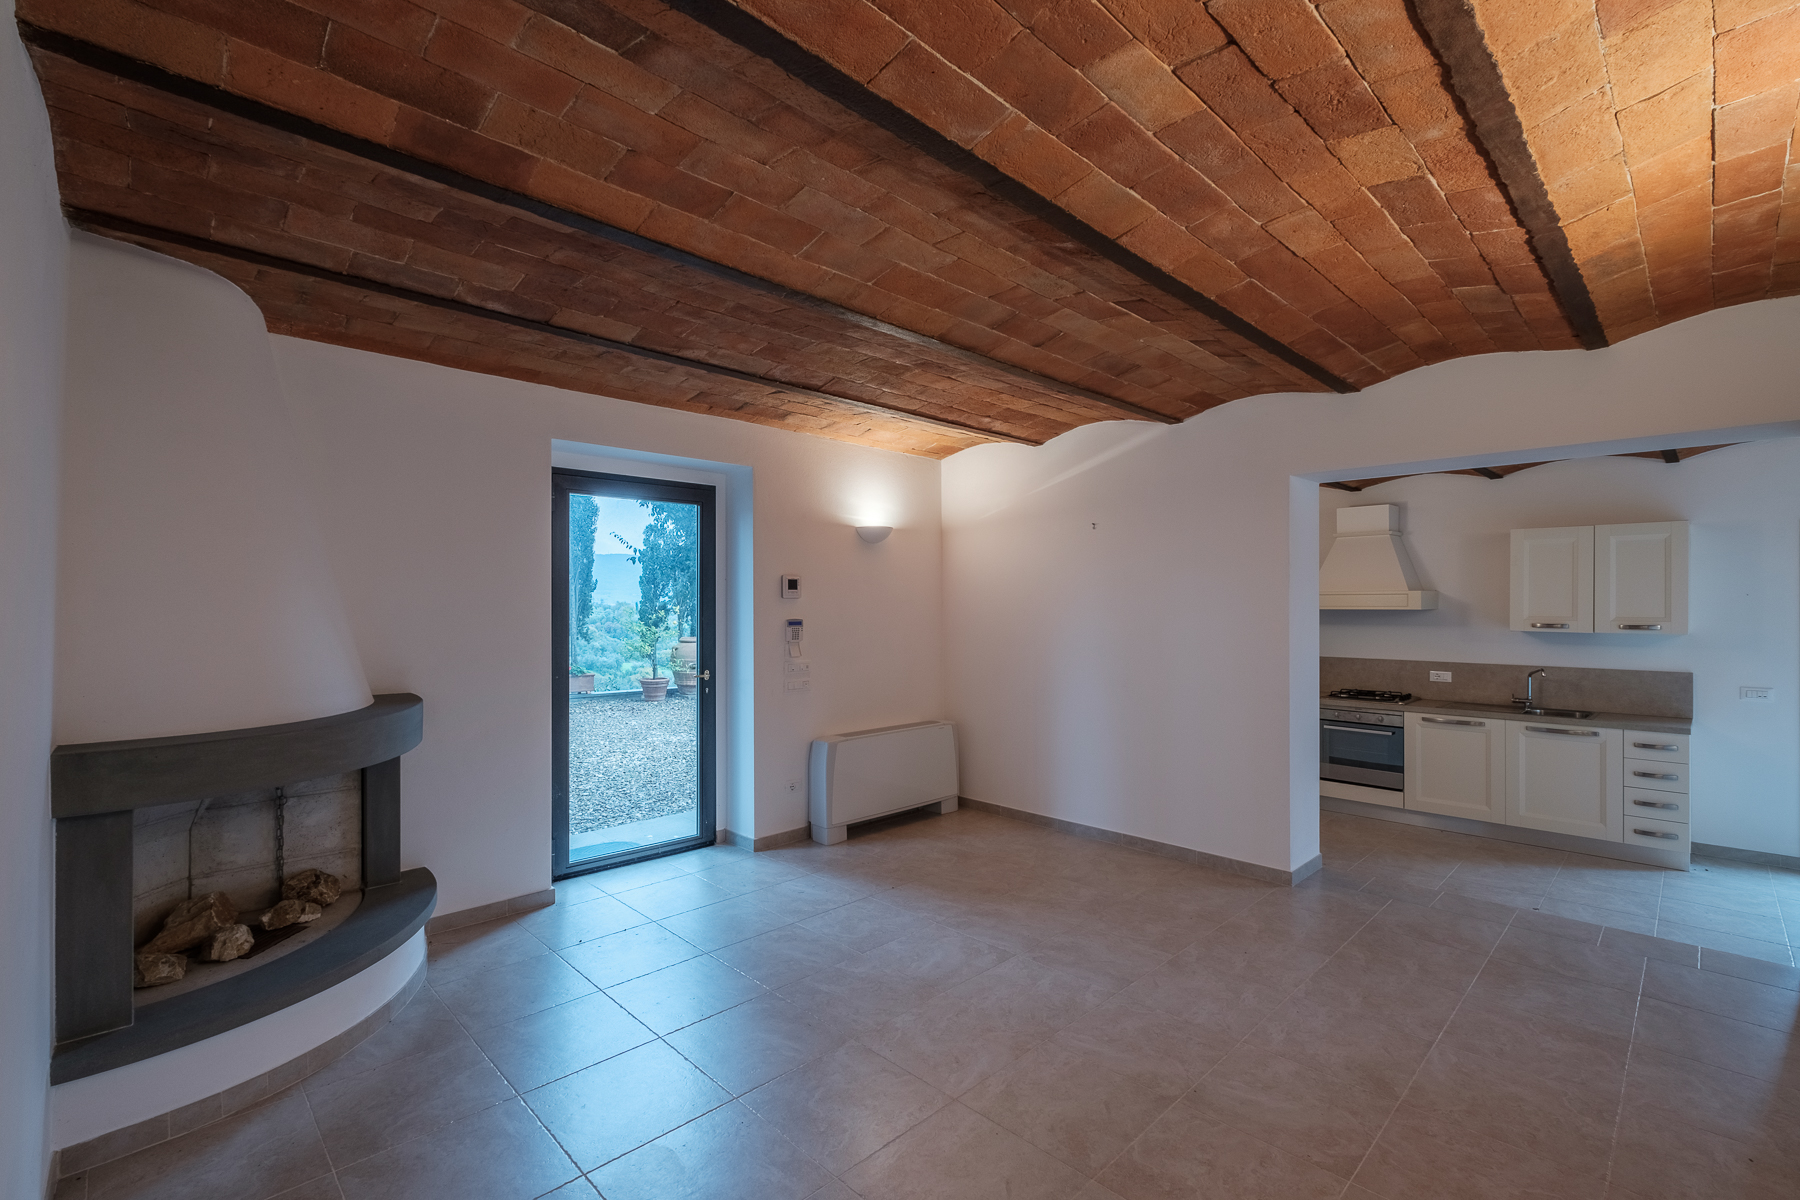 Single Family Home for Rent at Magnificent Villa to rent near Florence Via Fattucchia Bagno A Ripoli, Florence 50012 Italy